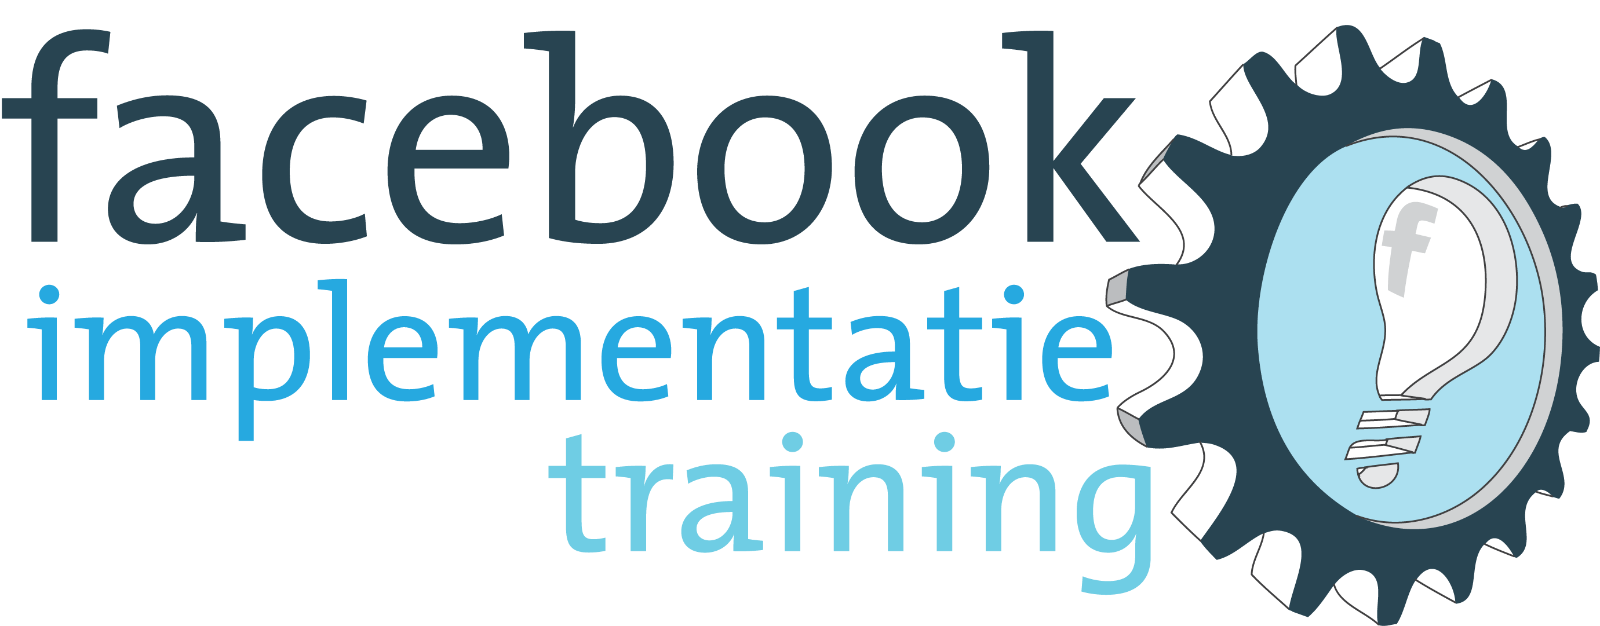 Facebook Implementatietraining 5 september 2018